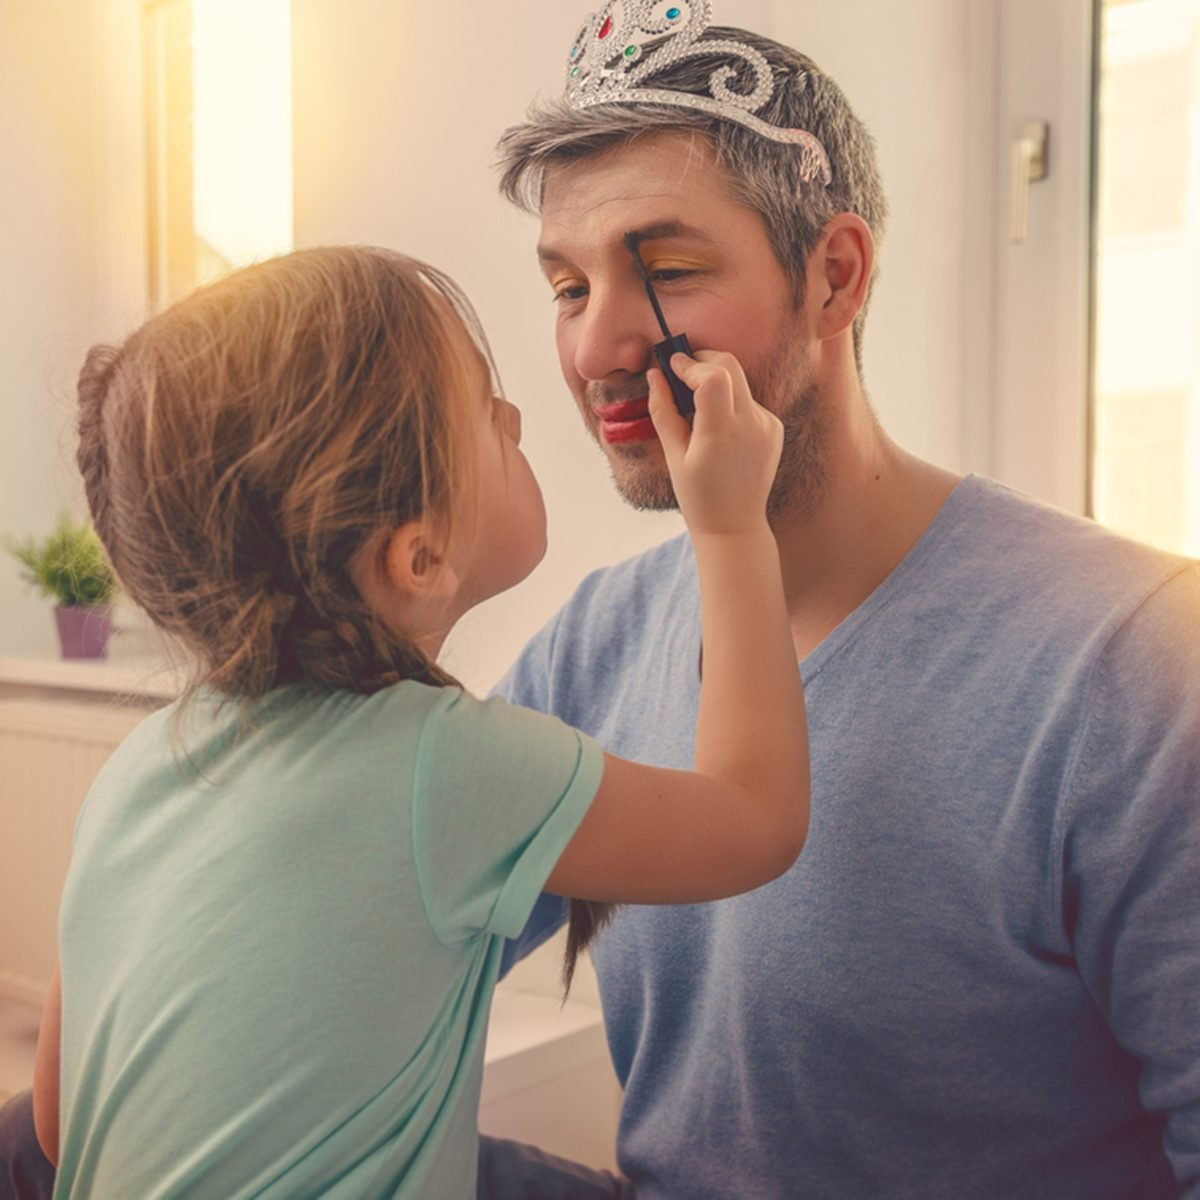 dad with cute daughter beeing treated with lipstick for carnival; Shutterstock ID 603110969; Job (TFH, TOH, RD, BNB, CWM, CM): TOH